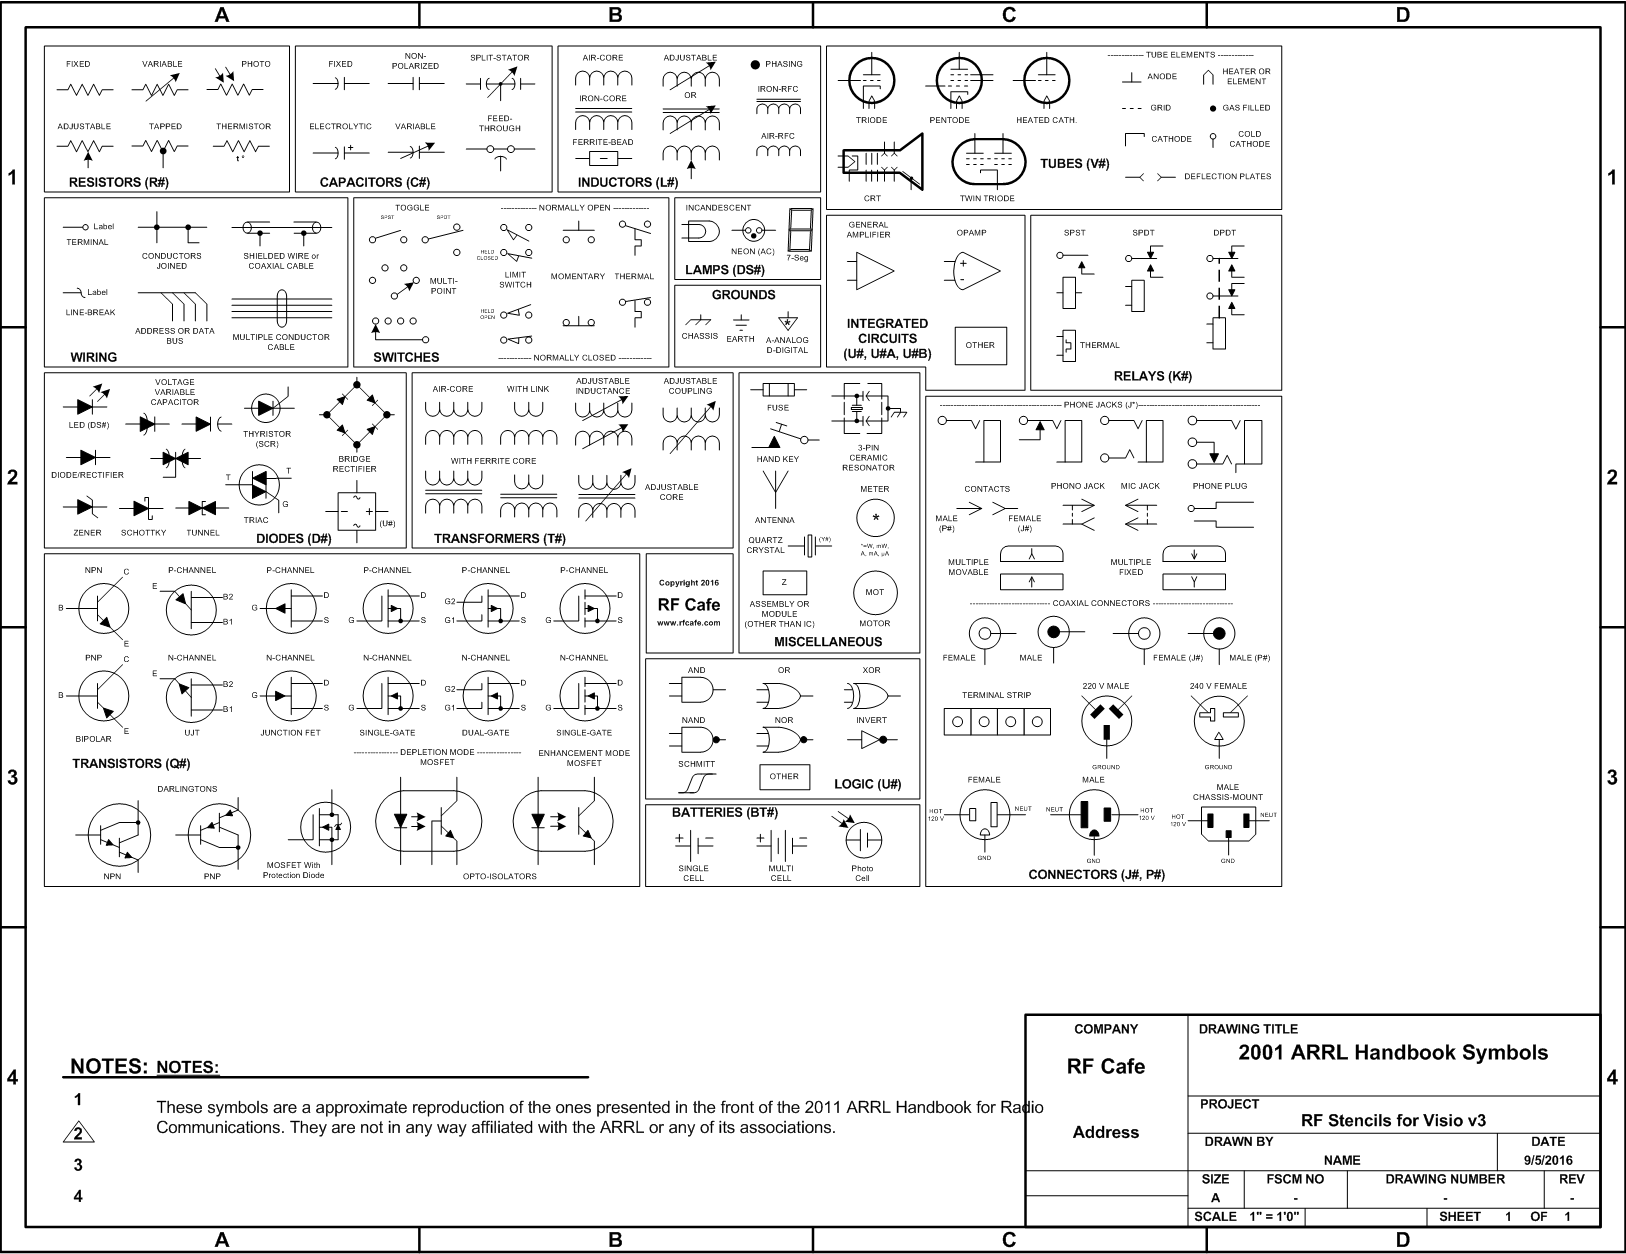 Rf Microwave Wireless Analog Block Diagrams Stencils Shapes For What Is A Diagram In Electronics Visio Circuit Schematic Symbols From The 2011 Arrl Handbook Cafe